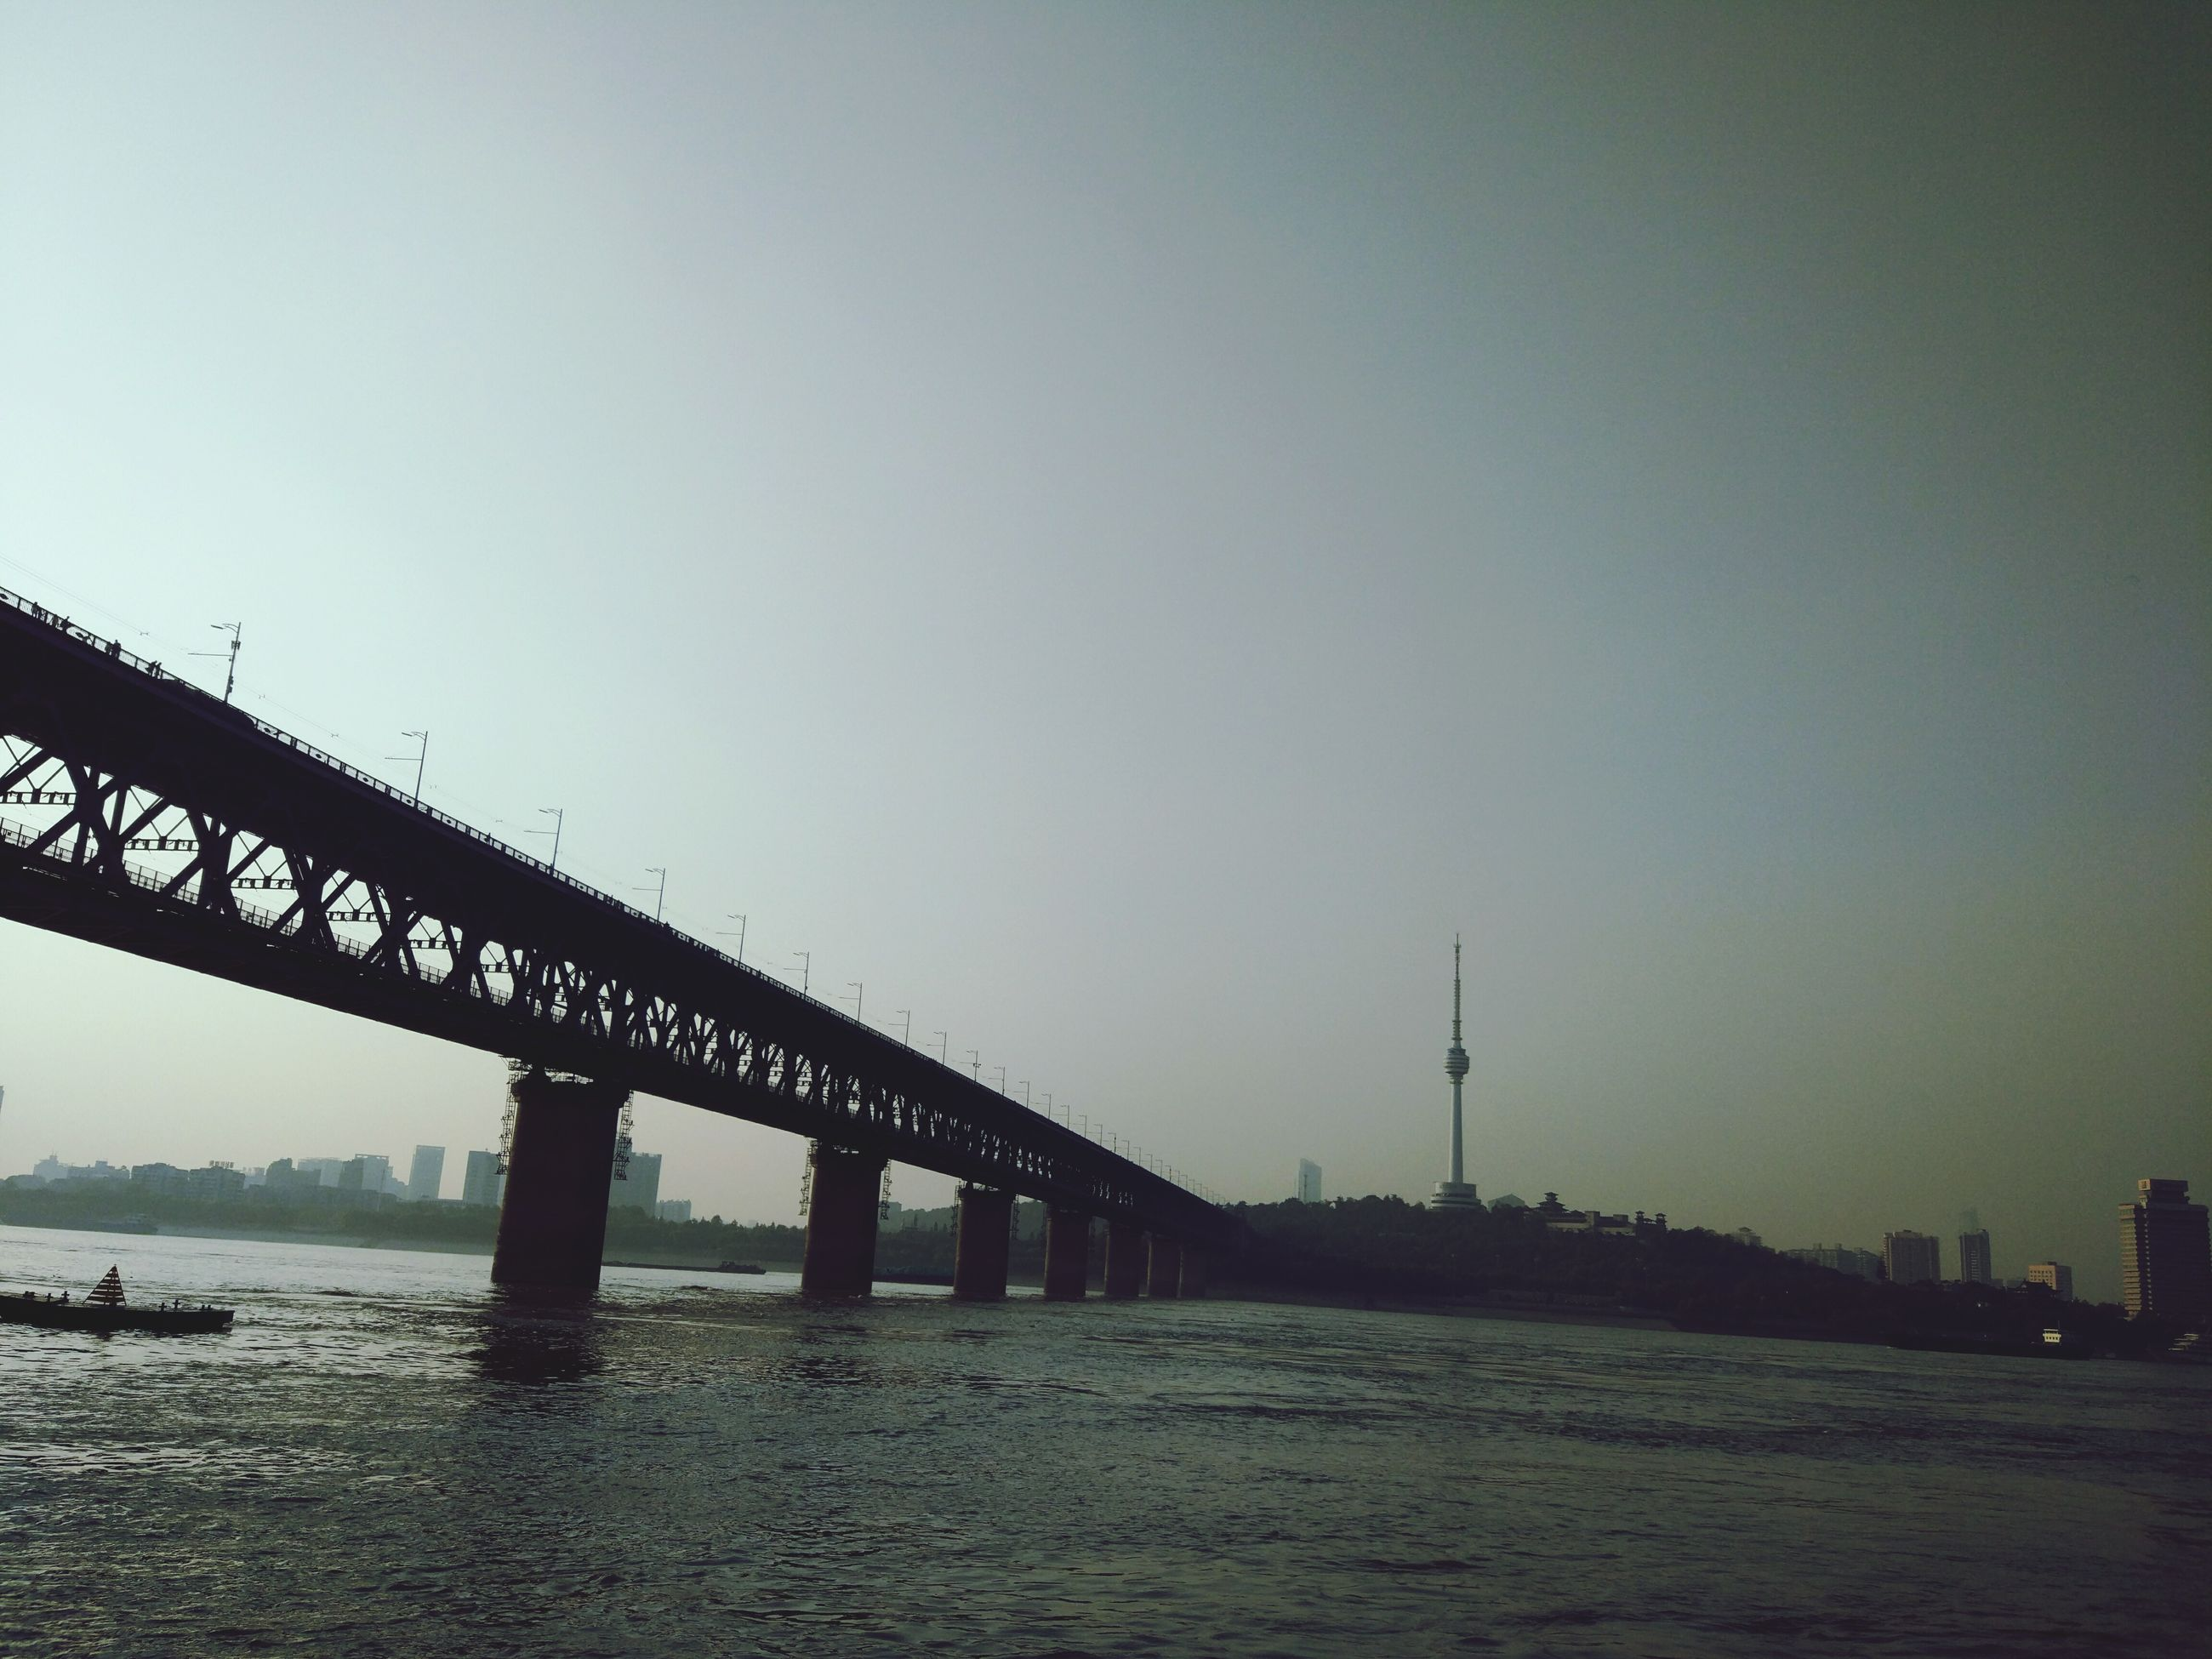 connection, bridge - man made structure, built structure, architecture, city, travel destinations, outdoors, sky, water, no people, day